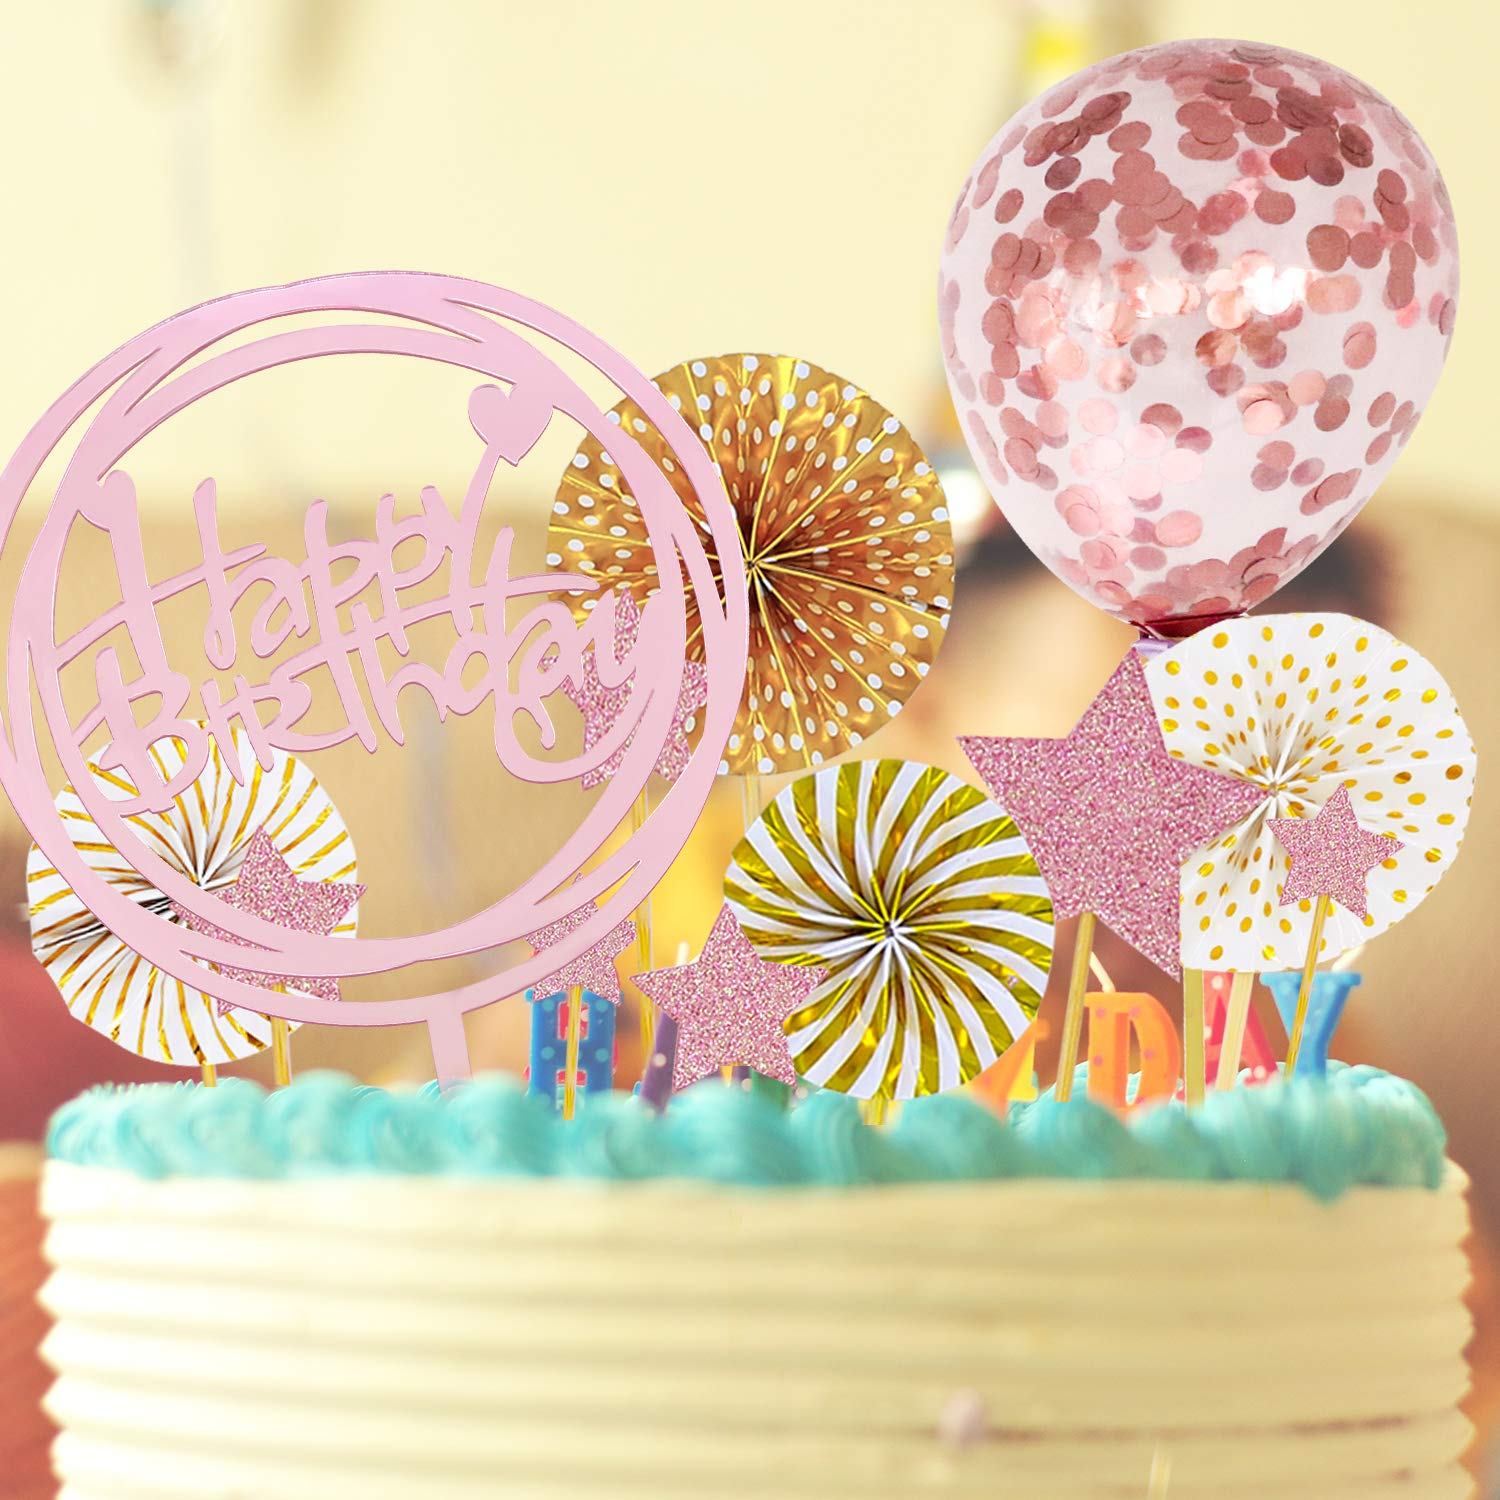 12 PCS Happy Birthday Cake Topper Set Rose Gold Acrylic Round Frame Cupcake Topper Paper Fans Confetti Balloon Birthday Cake Supplies Decorations for Birthday party Baby Shower